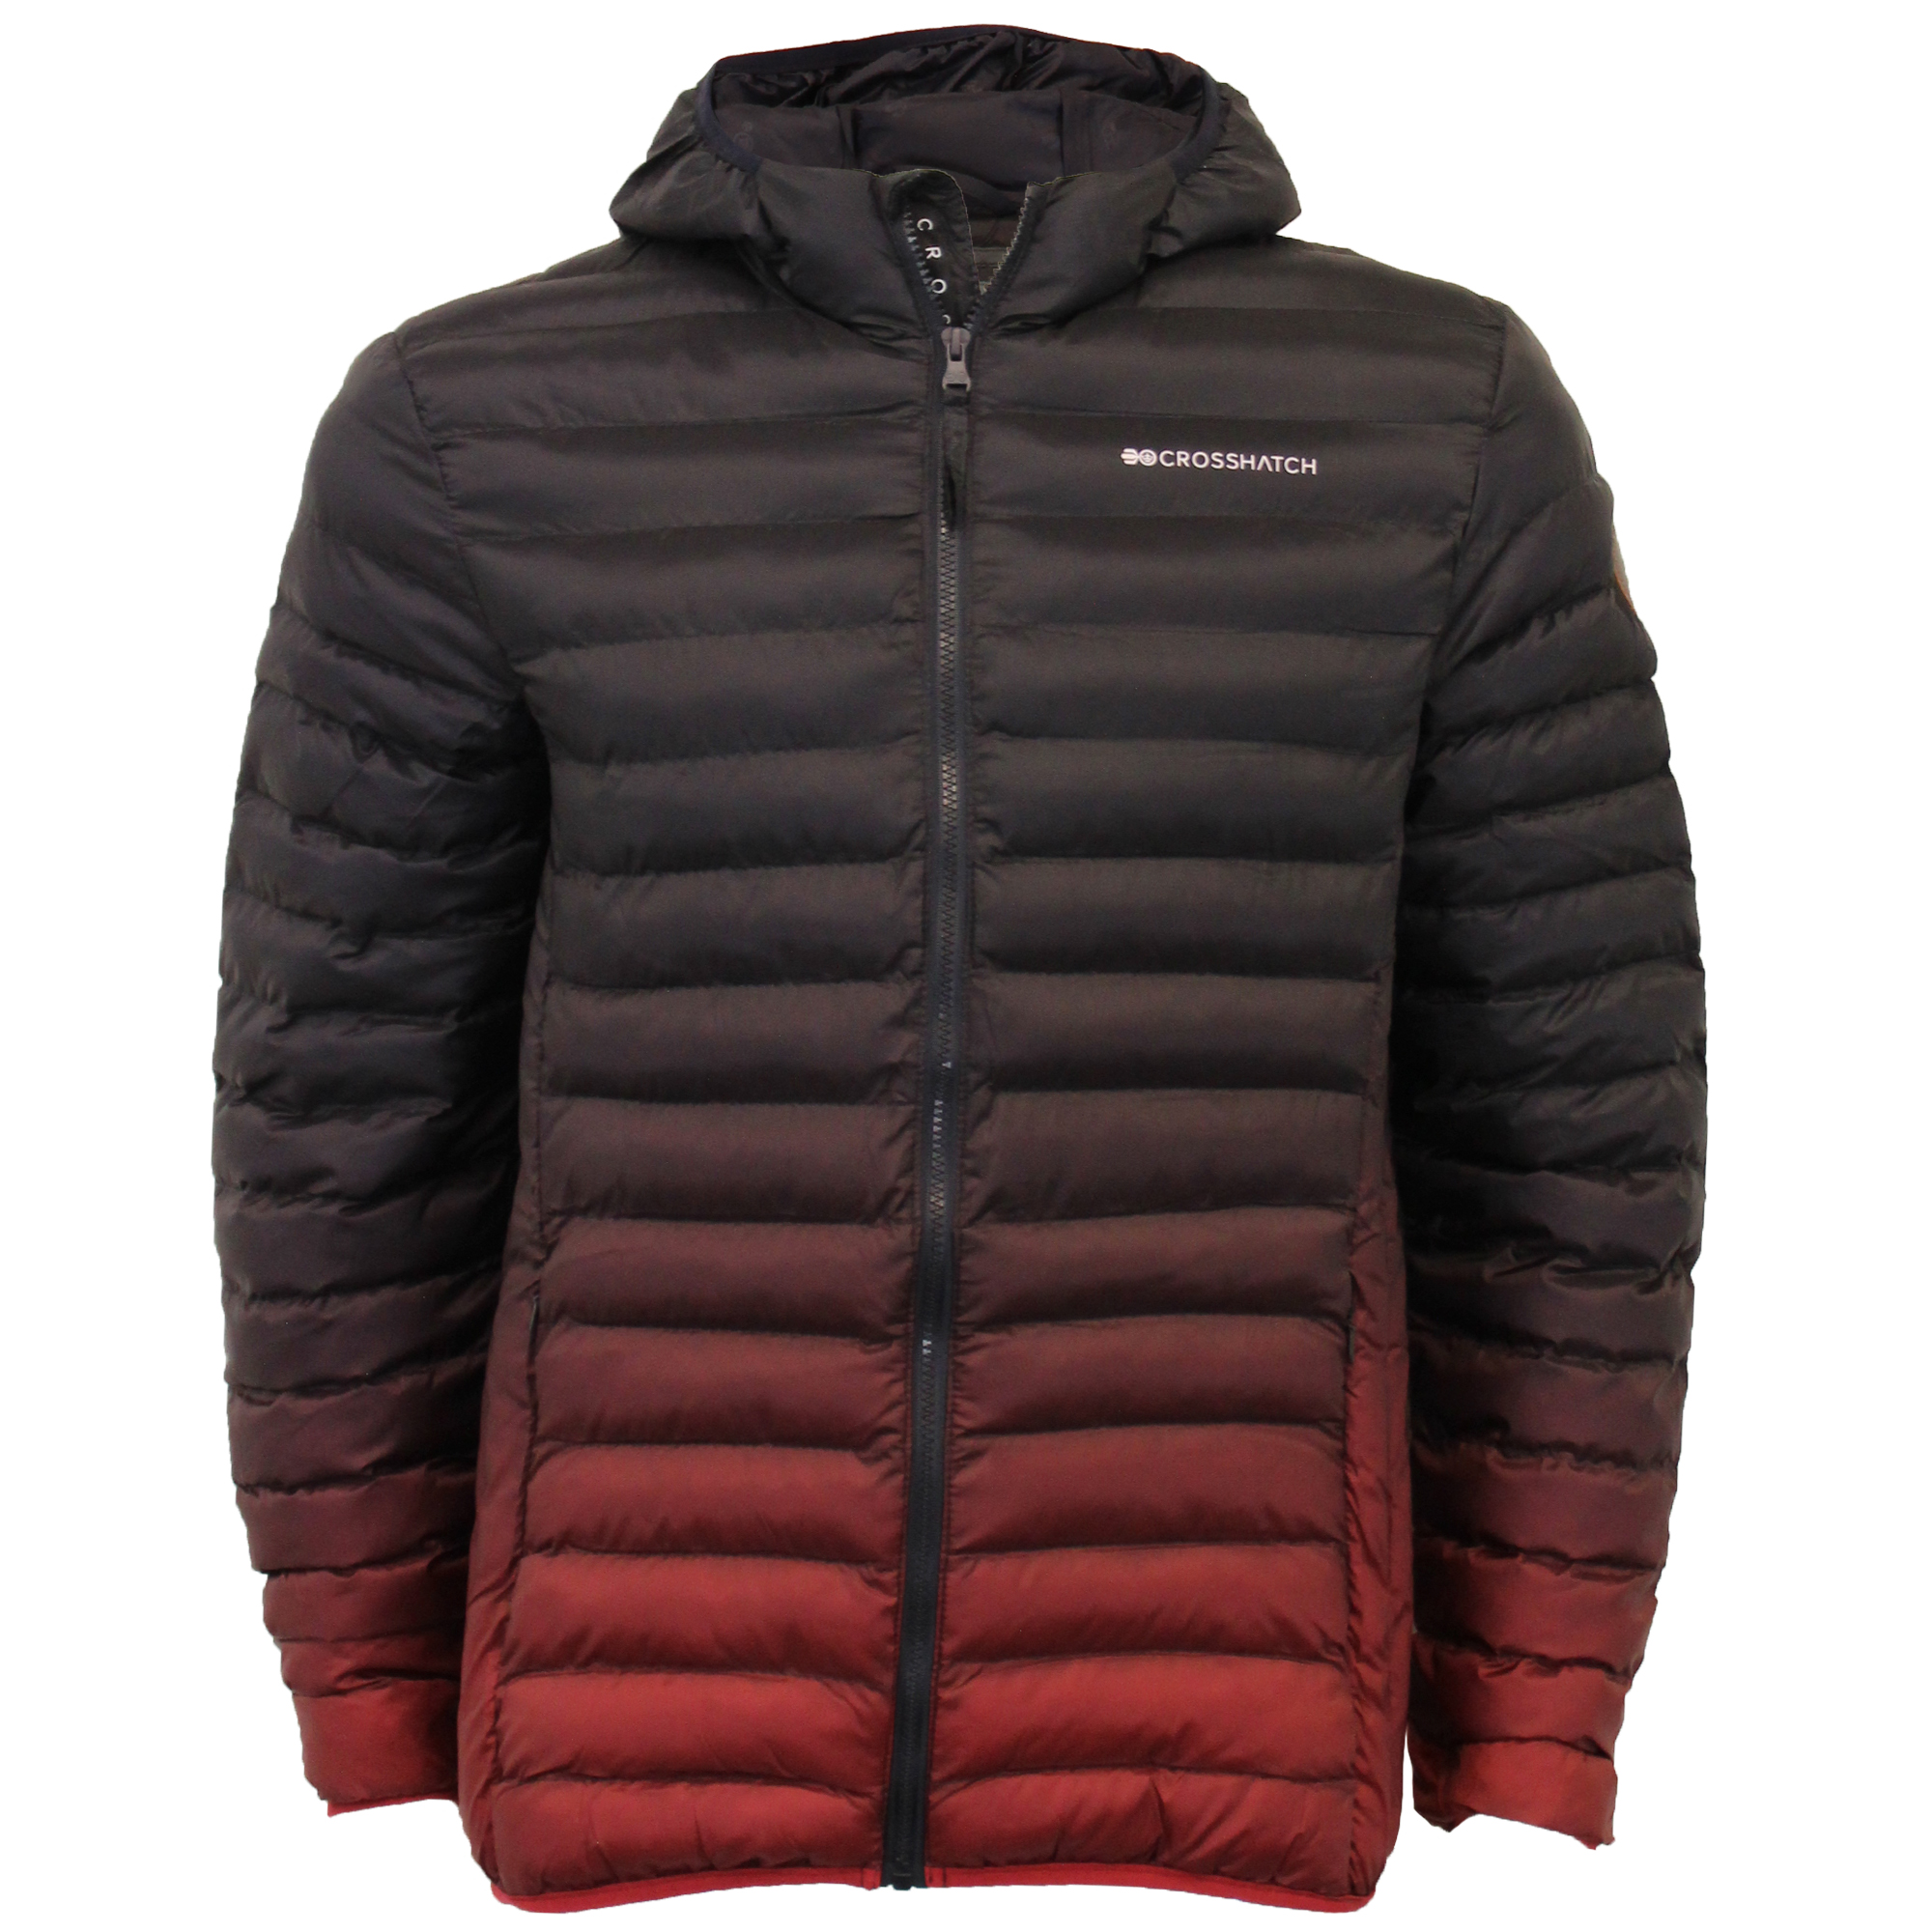 Mens-Jacket-Crosshatch-Hooded-Padded-Quilted-Two-Tone-FADEDOWN-Lined-Winter-New thumbnail 11